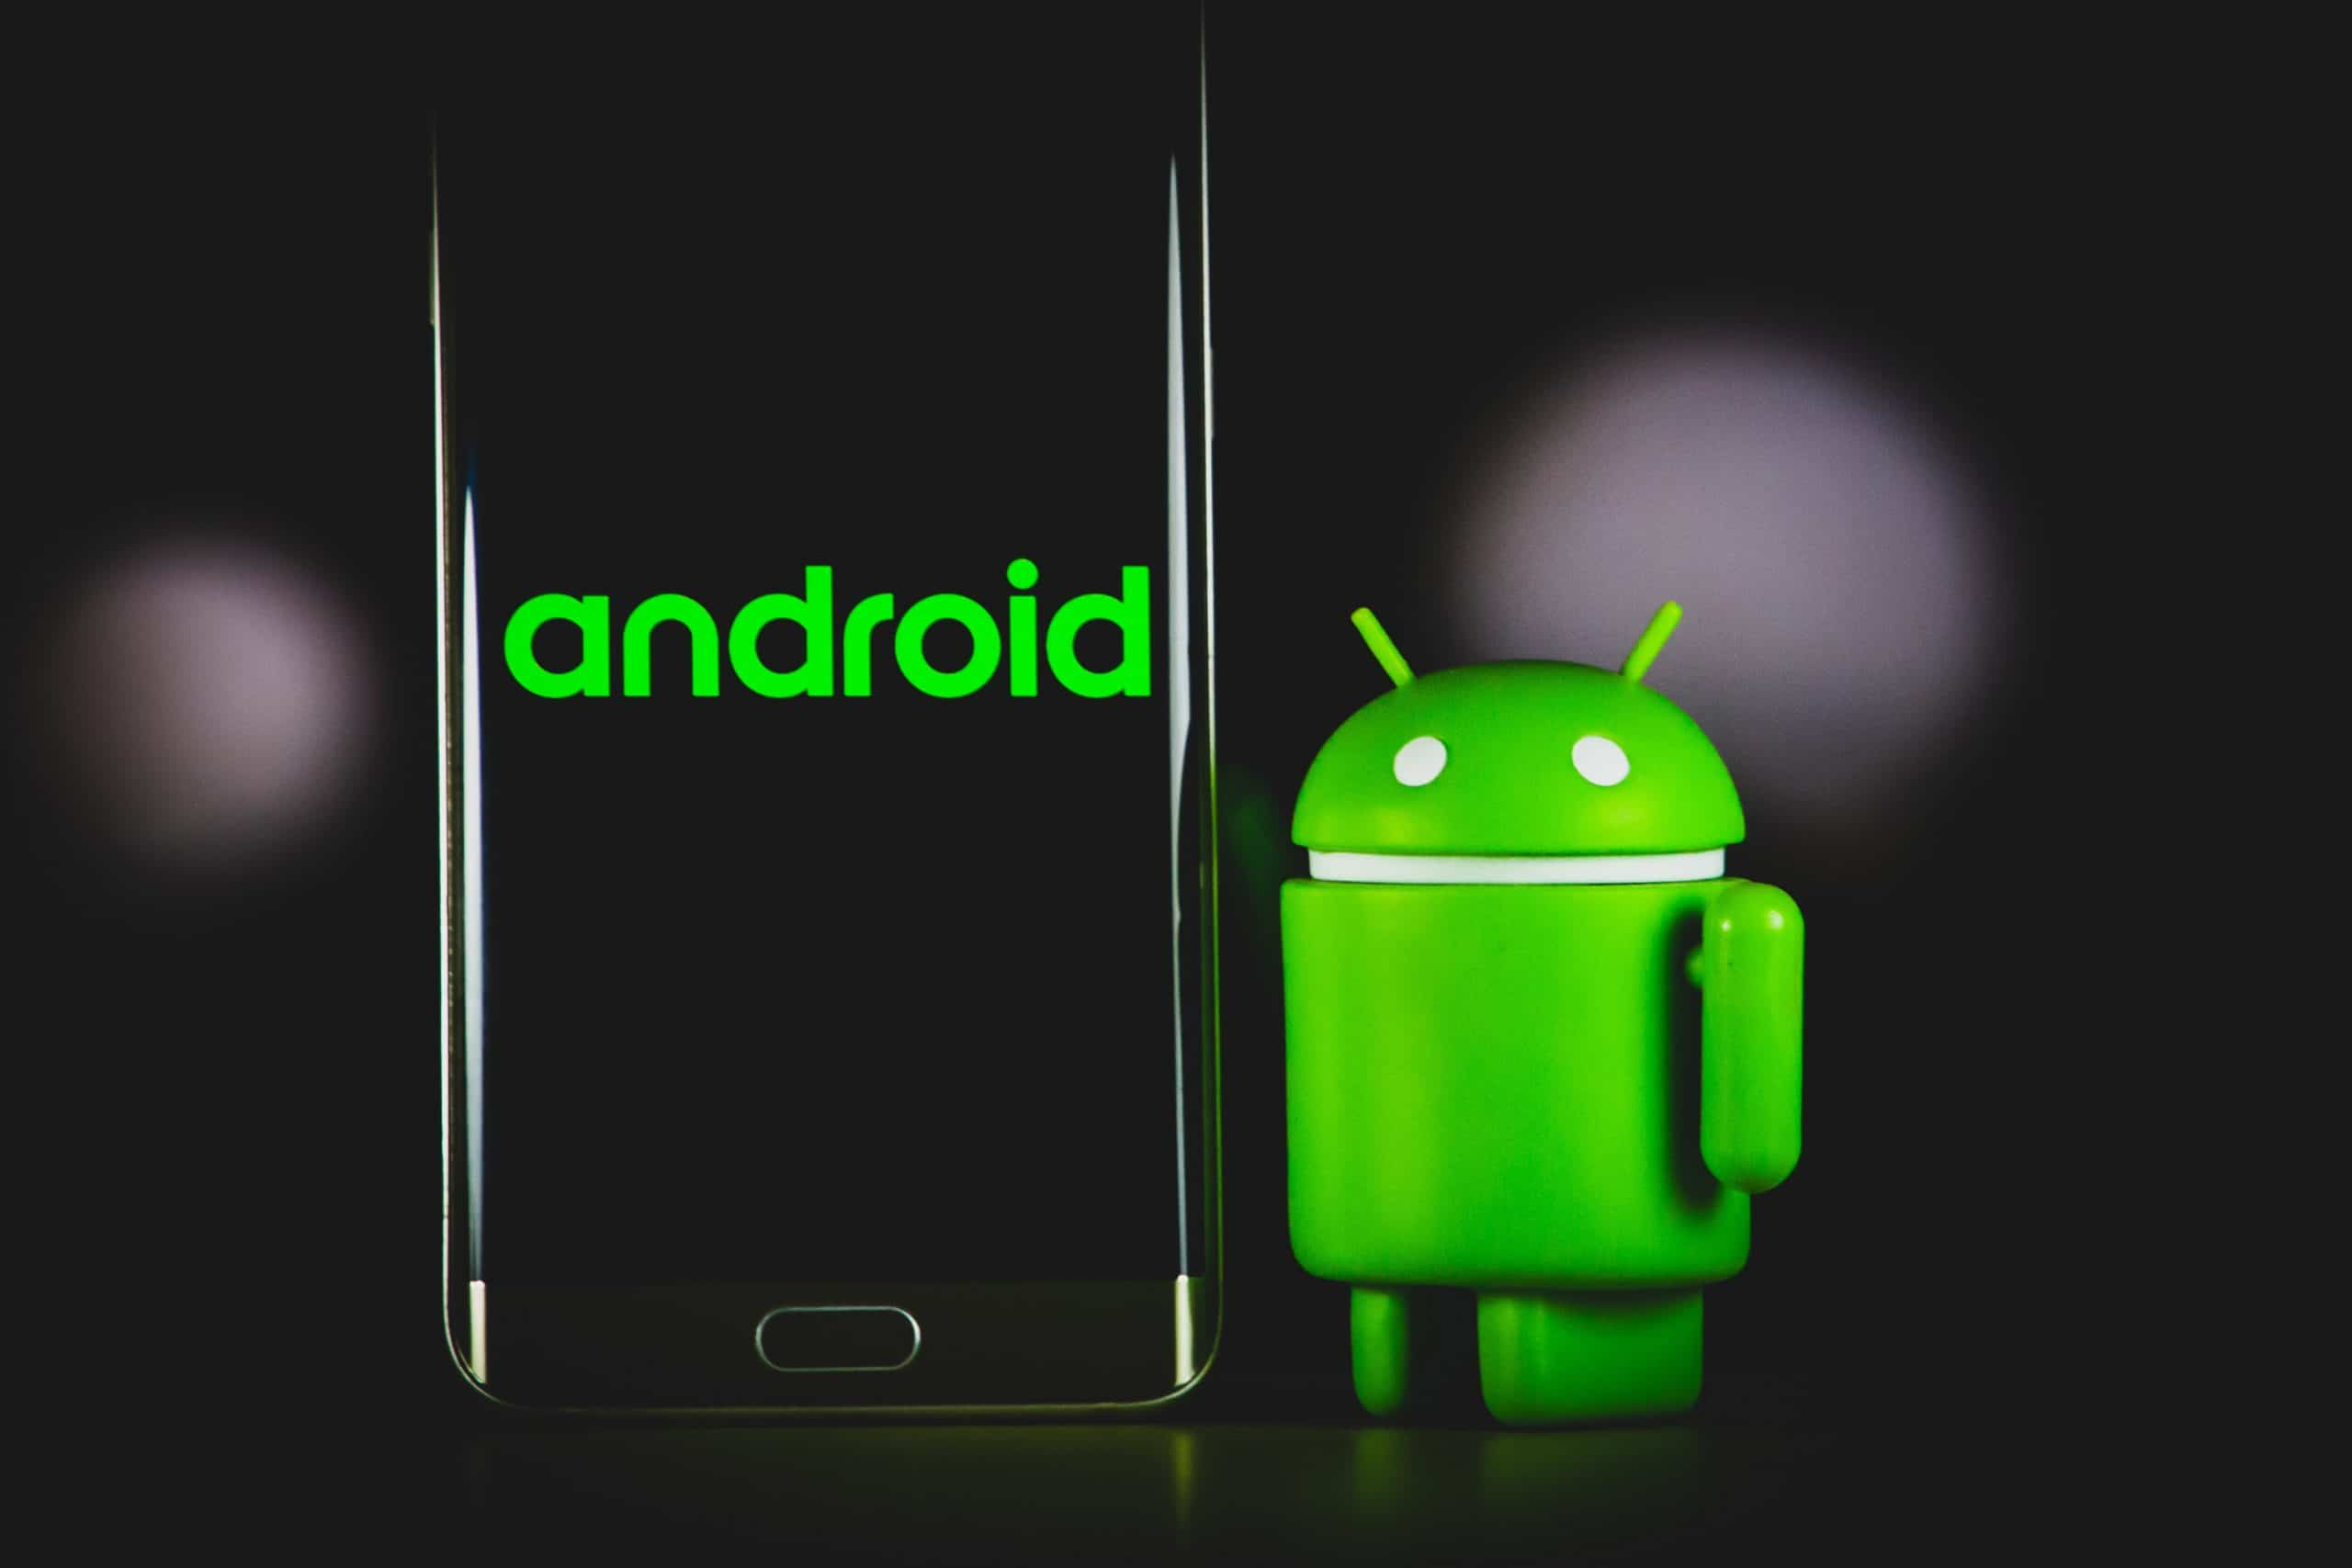 how to run an expo app on an android emulator on a PC